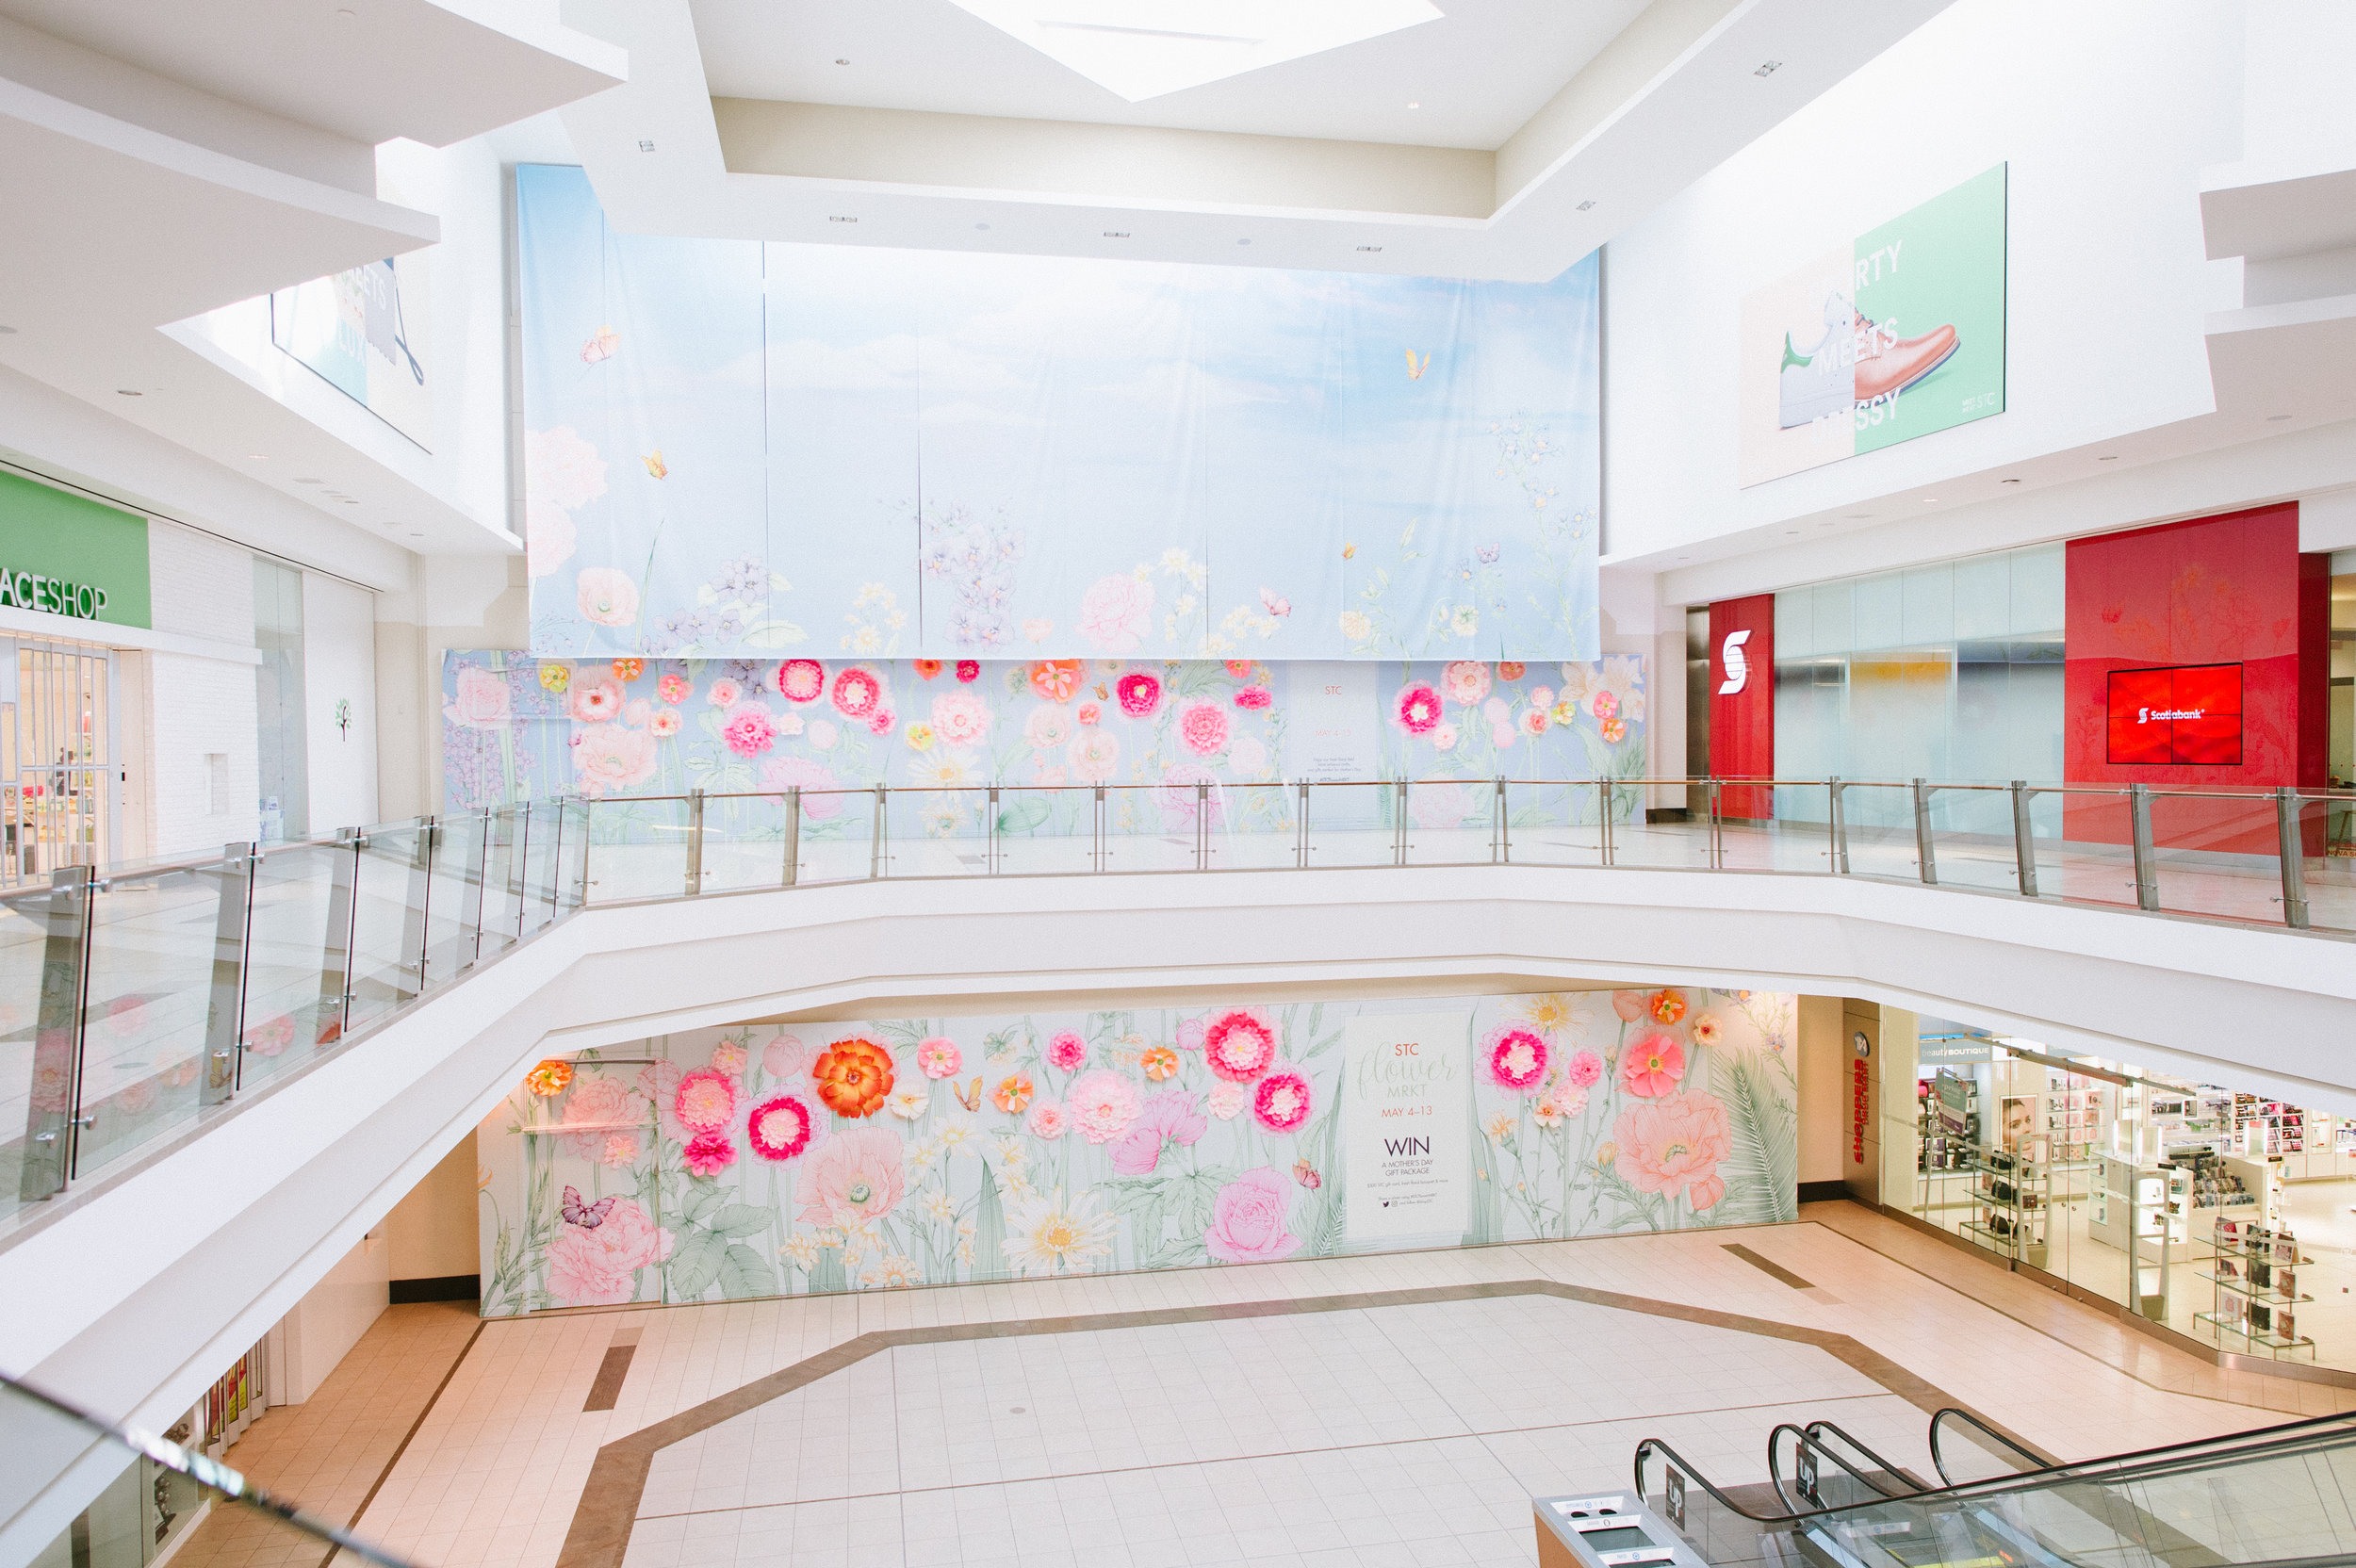 August In Bloom - Full installation - STC Spring Bloom Wall (Scarborough Town Centre)